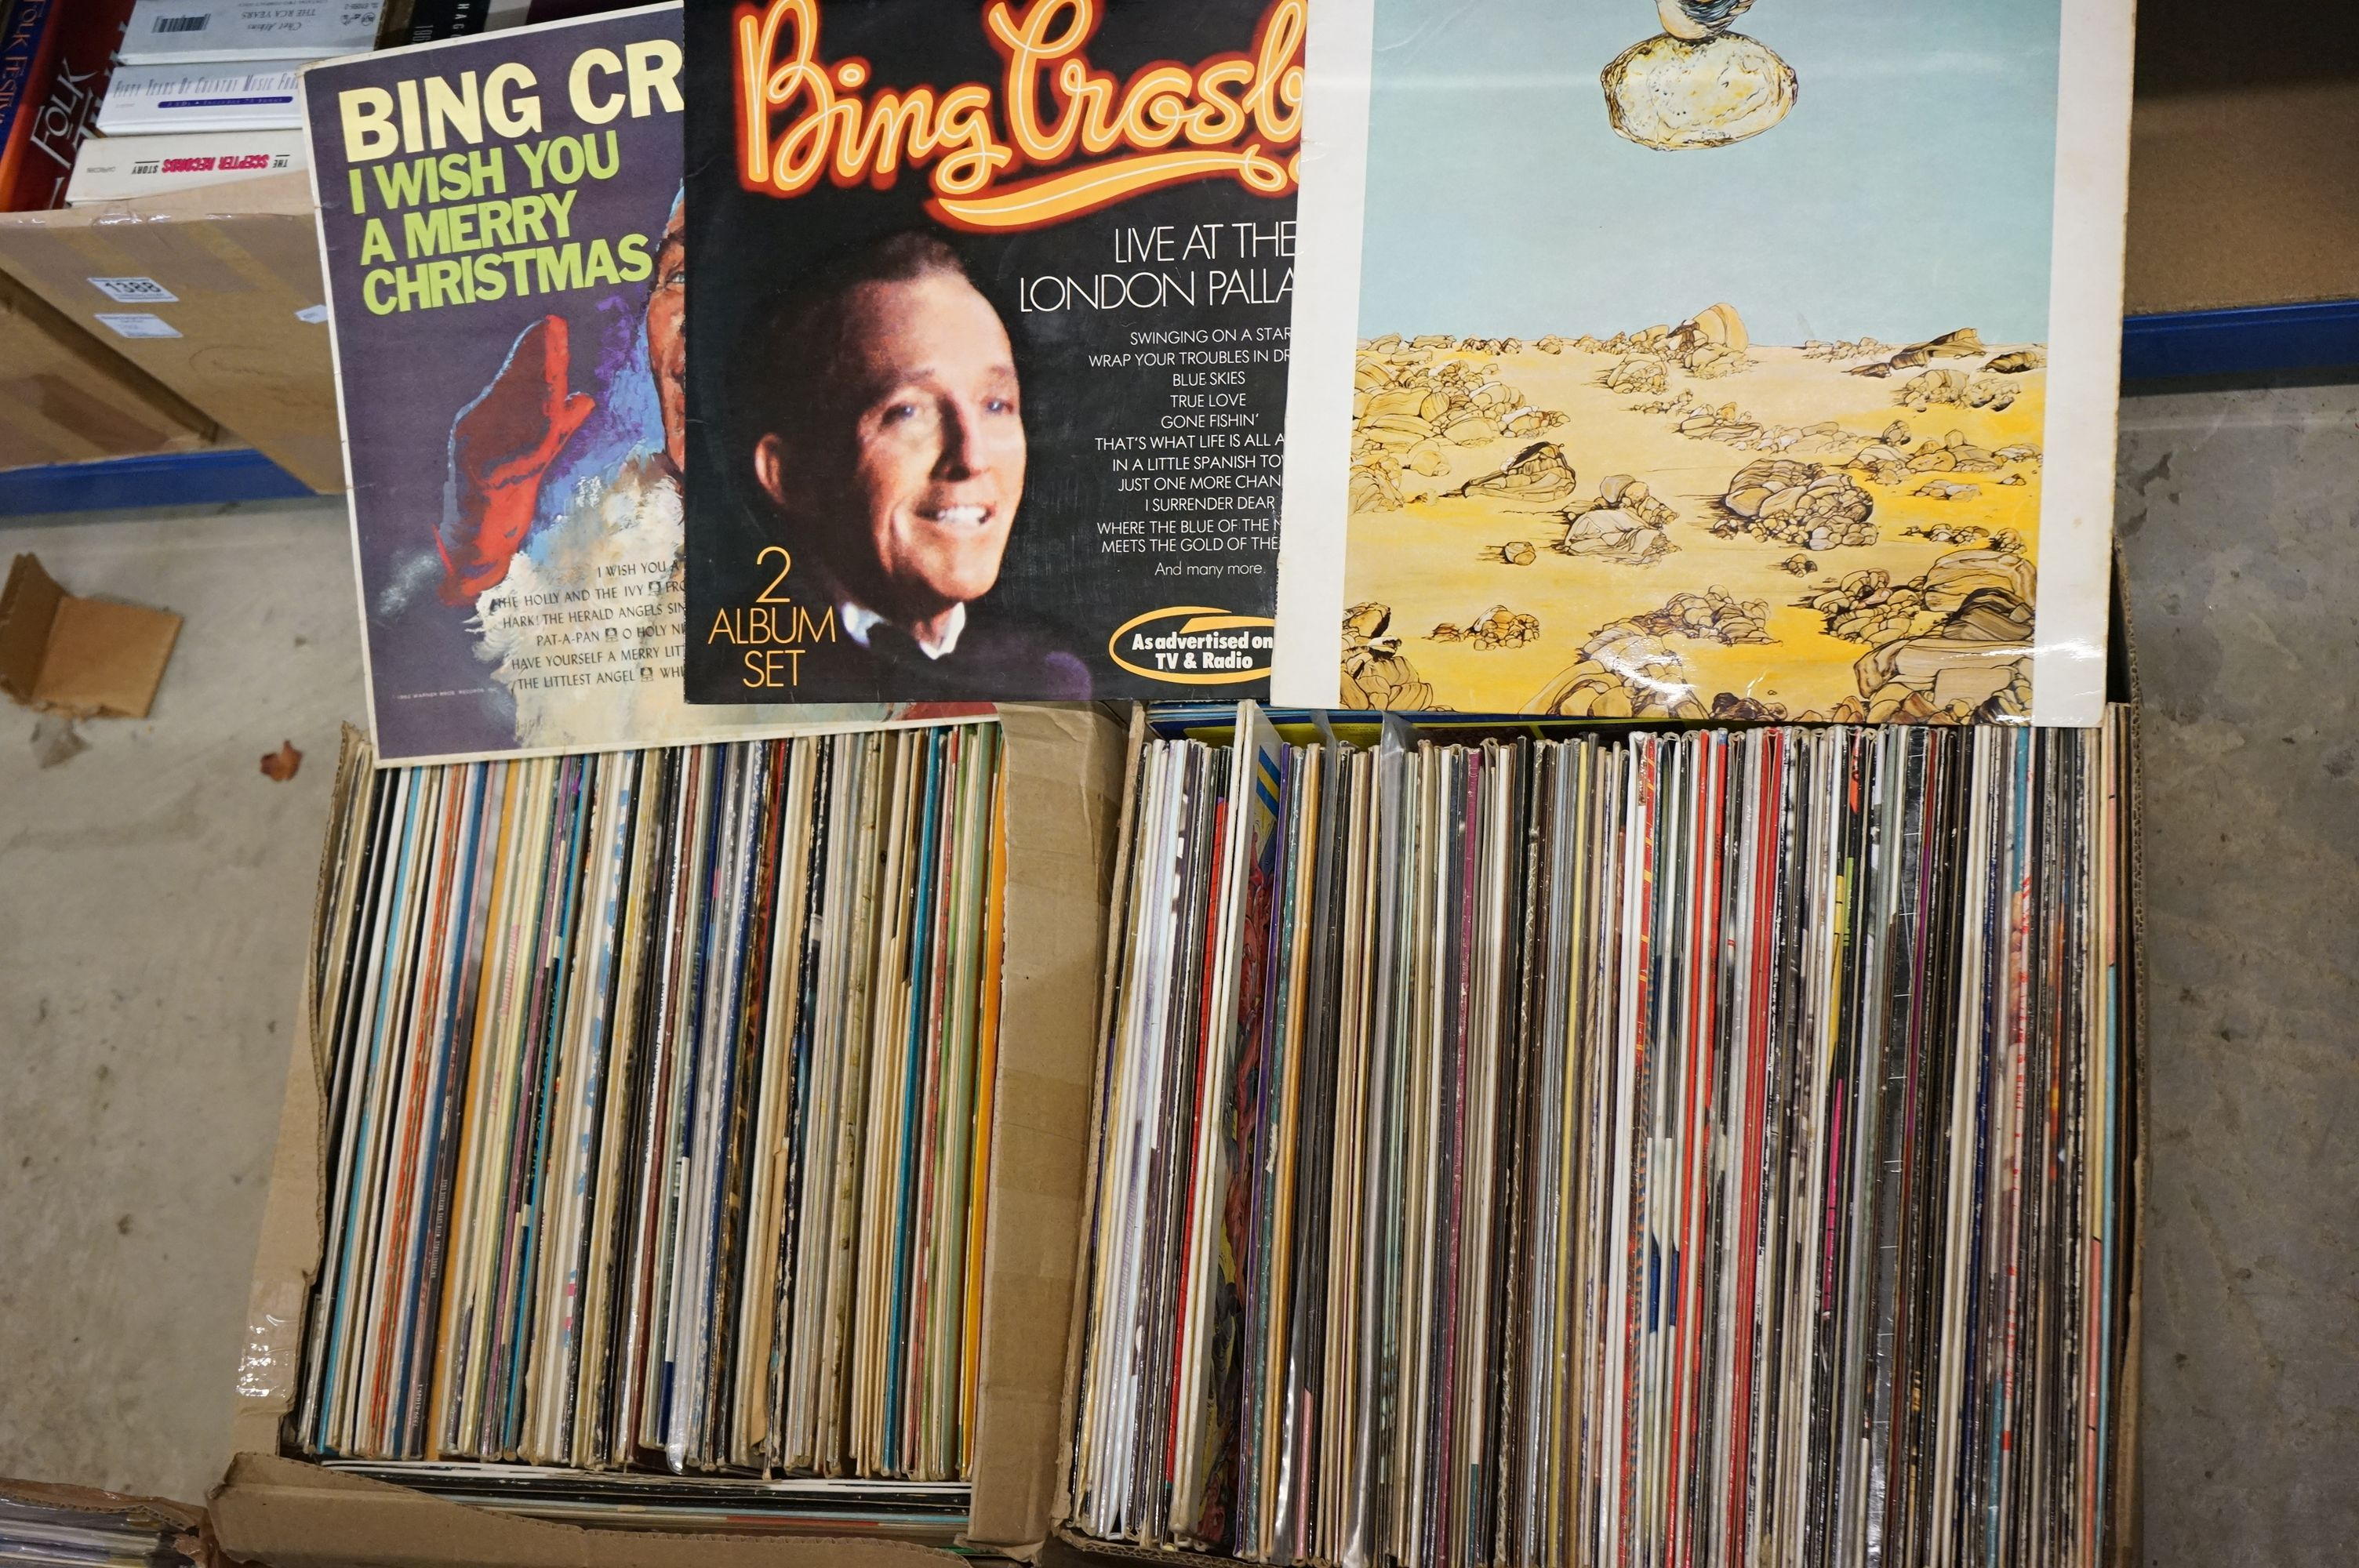 Vinyl - Around 220 LPs to include many Country artists, Elvis Costello, Compilations etc, sleeves